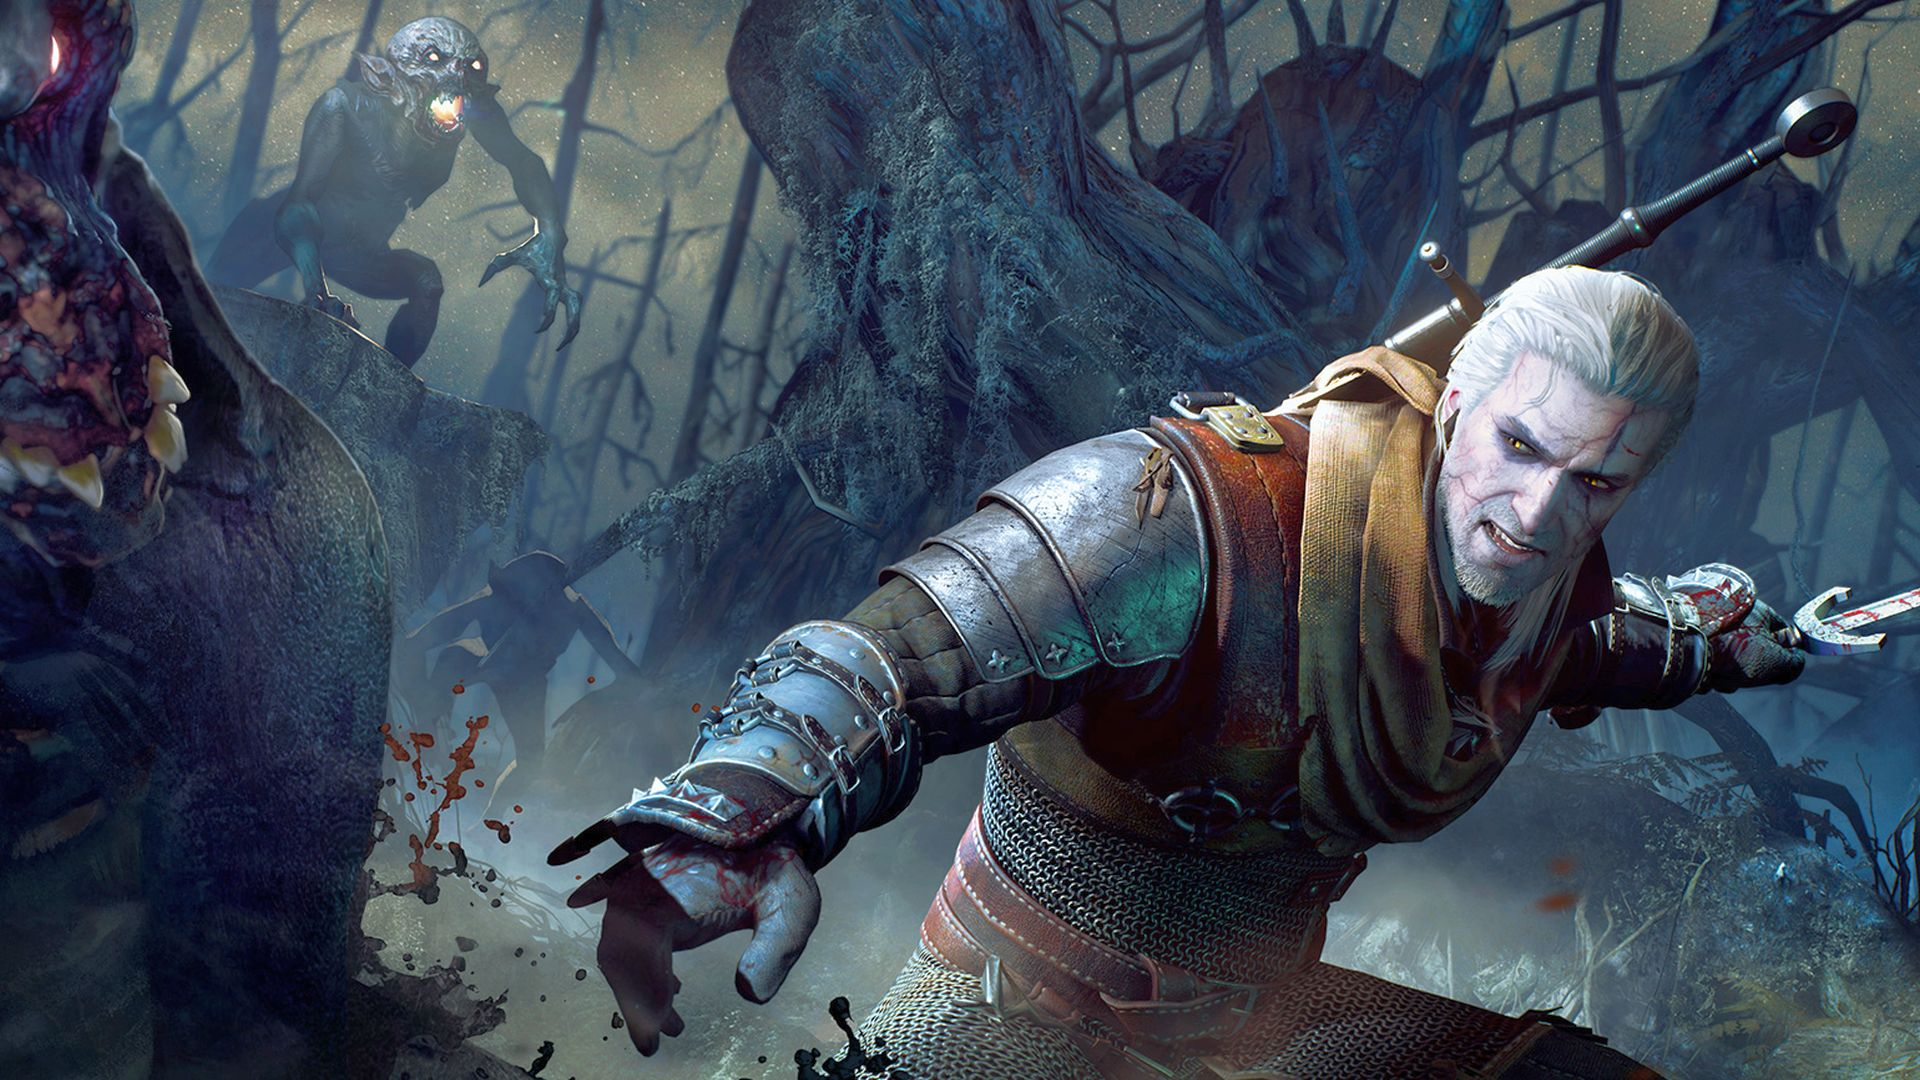 Witcher 3 and Cyberpunk 2077 dev is now working on Fable's combat